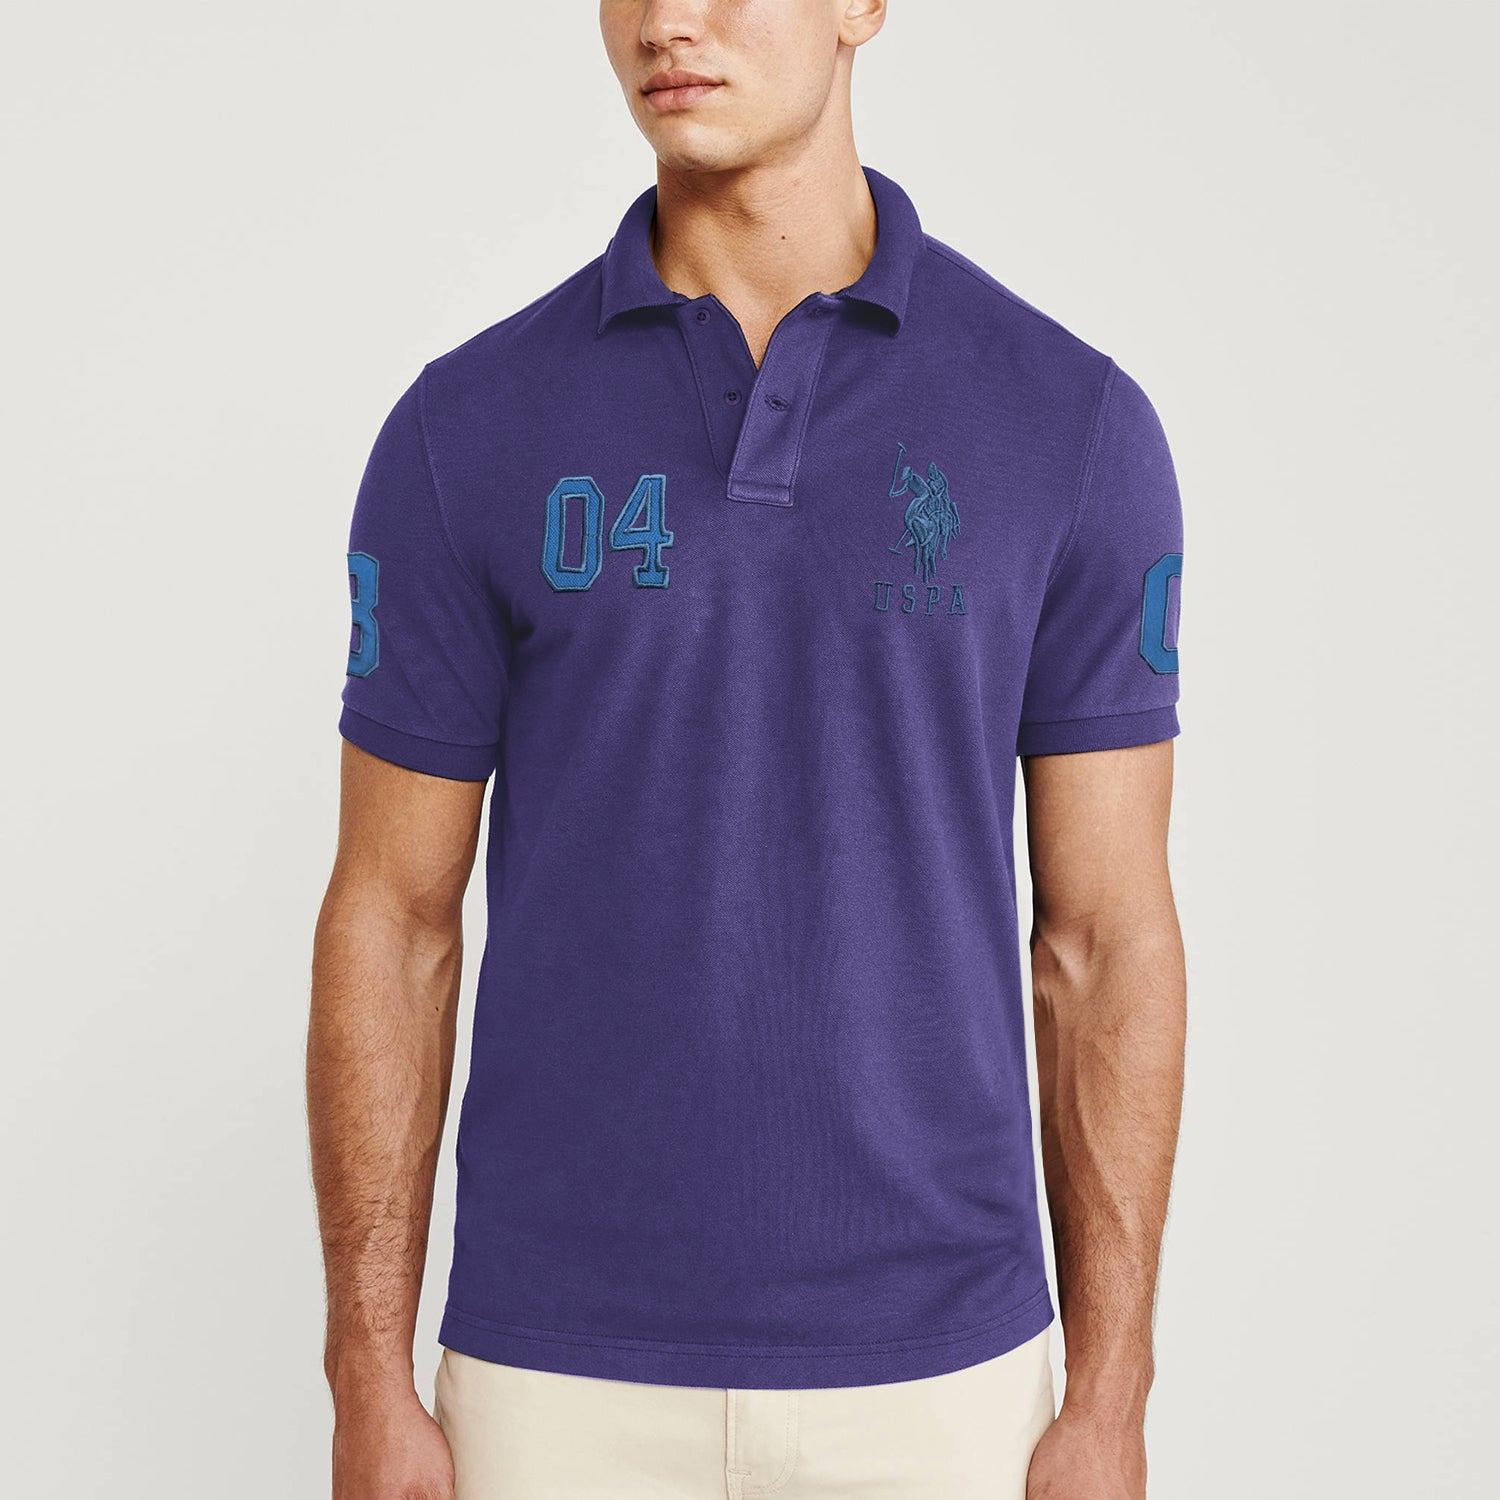 US Polo Muscle Fit Stylish Fashion Shirt For Men-Purple with Zinc Embroidery-BE11319